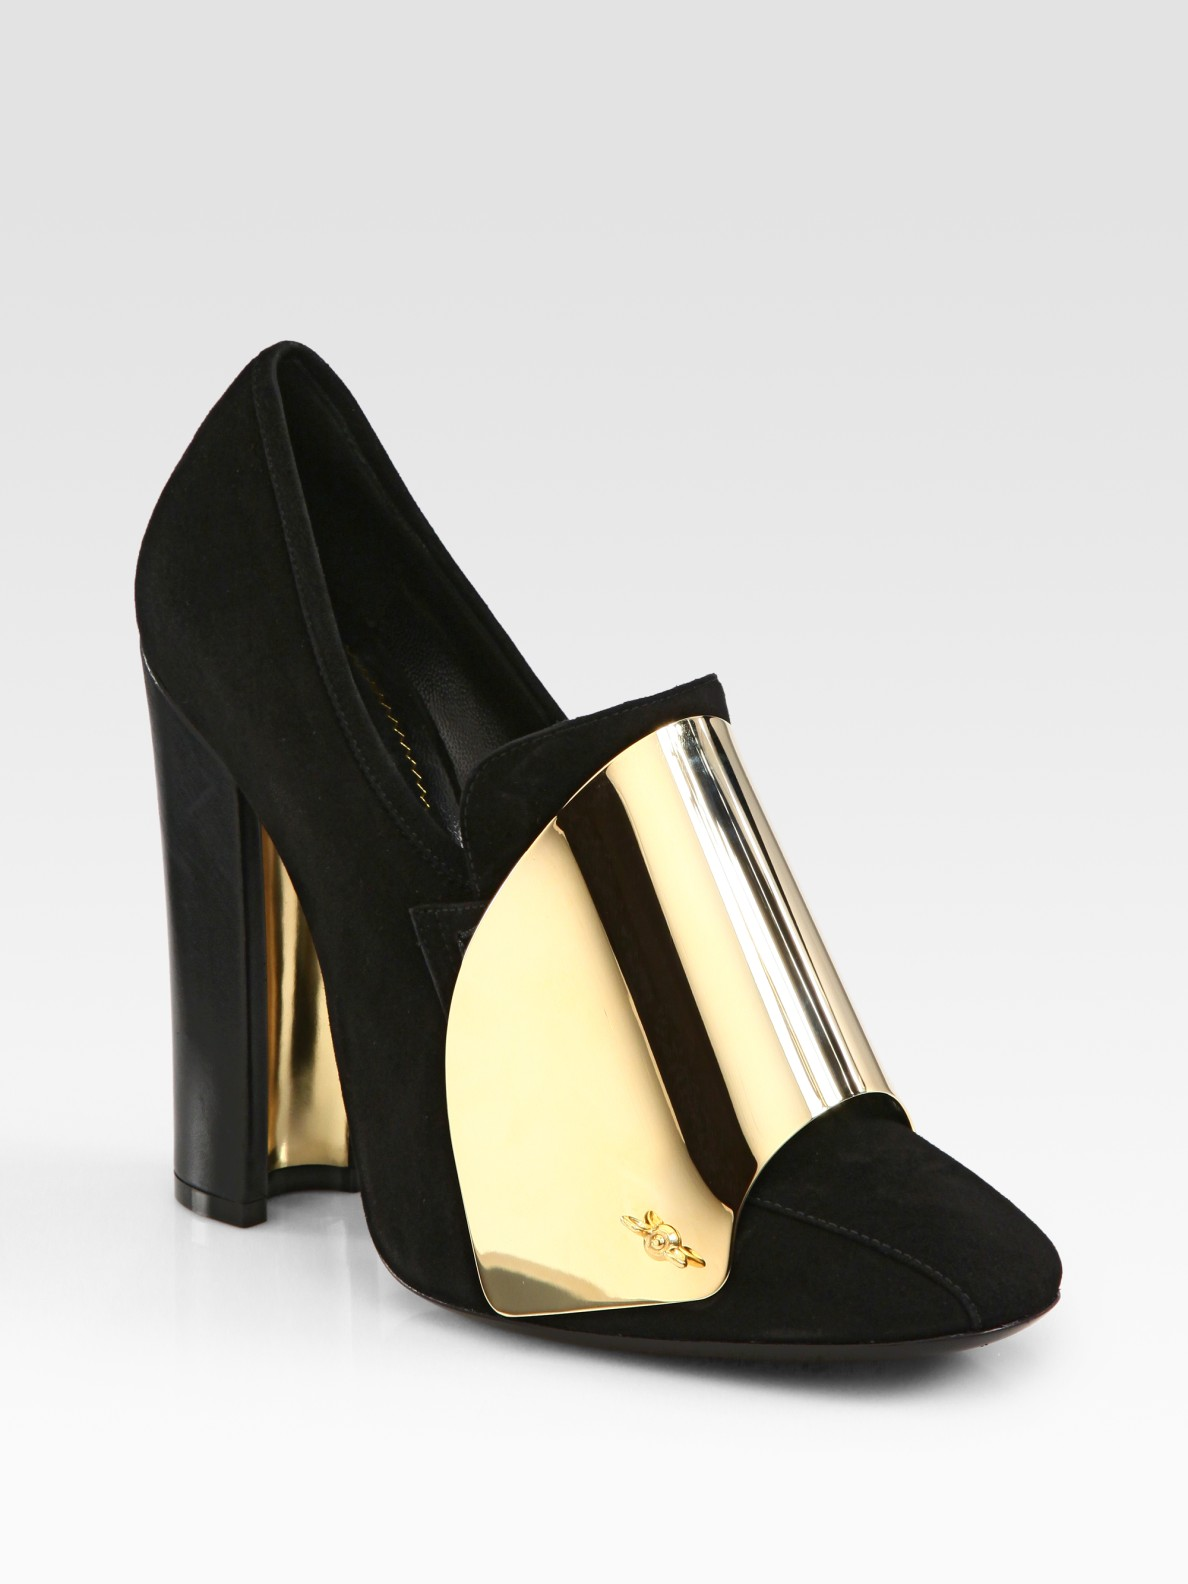 supply for sale free shipping order Yves Saint Laurent Loafer Platform Pumps with mastercard best prices online outlet view qVJVL